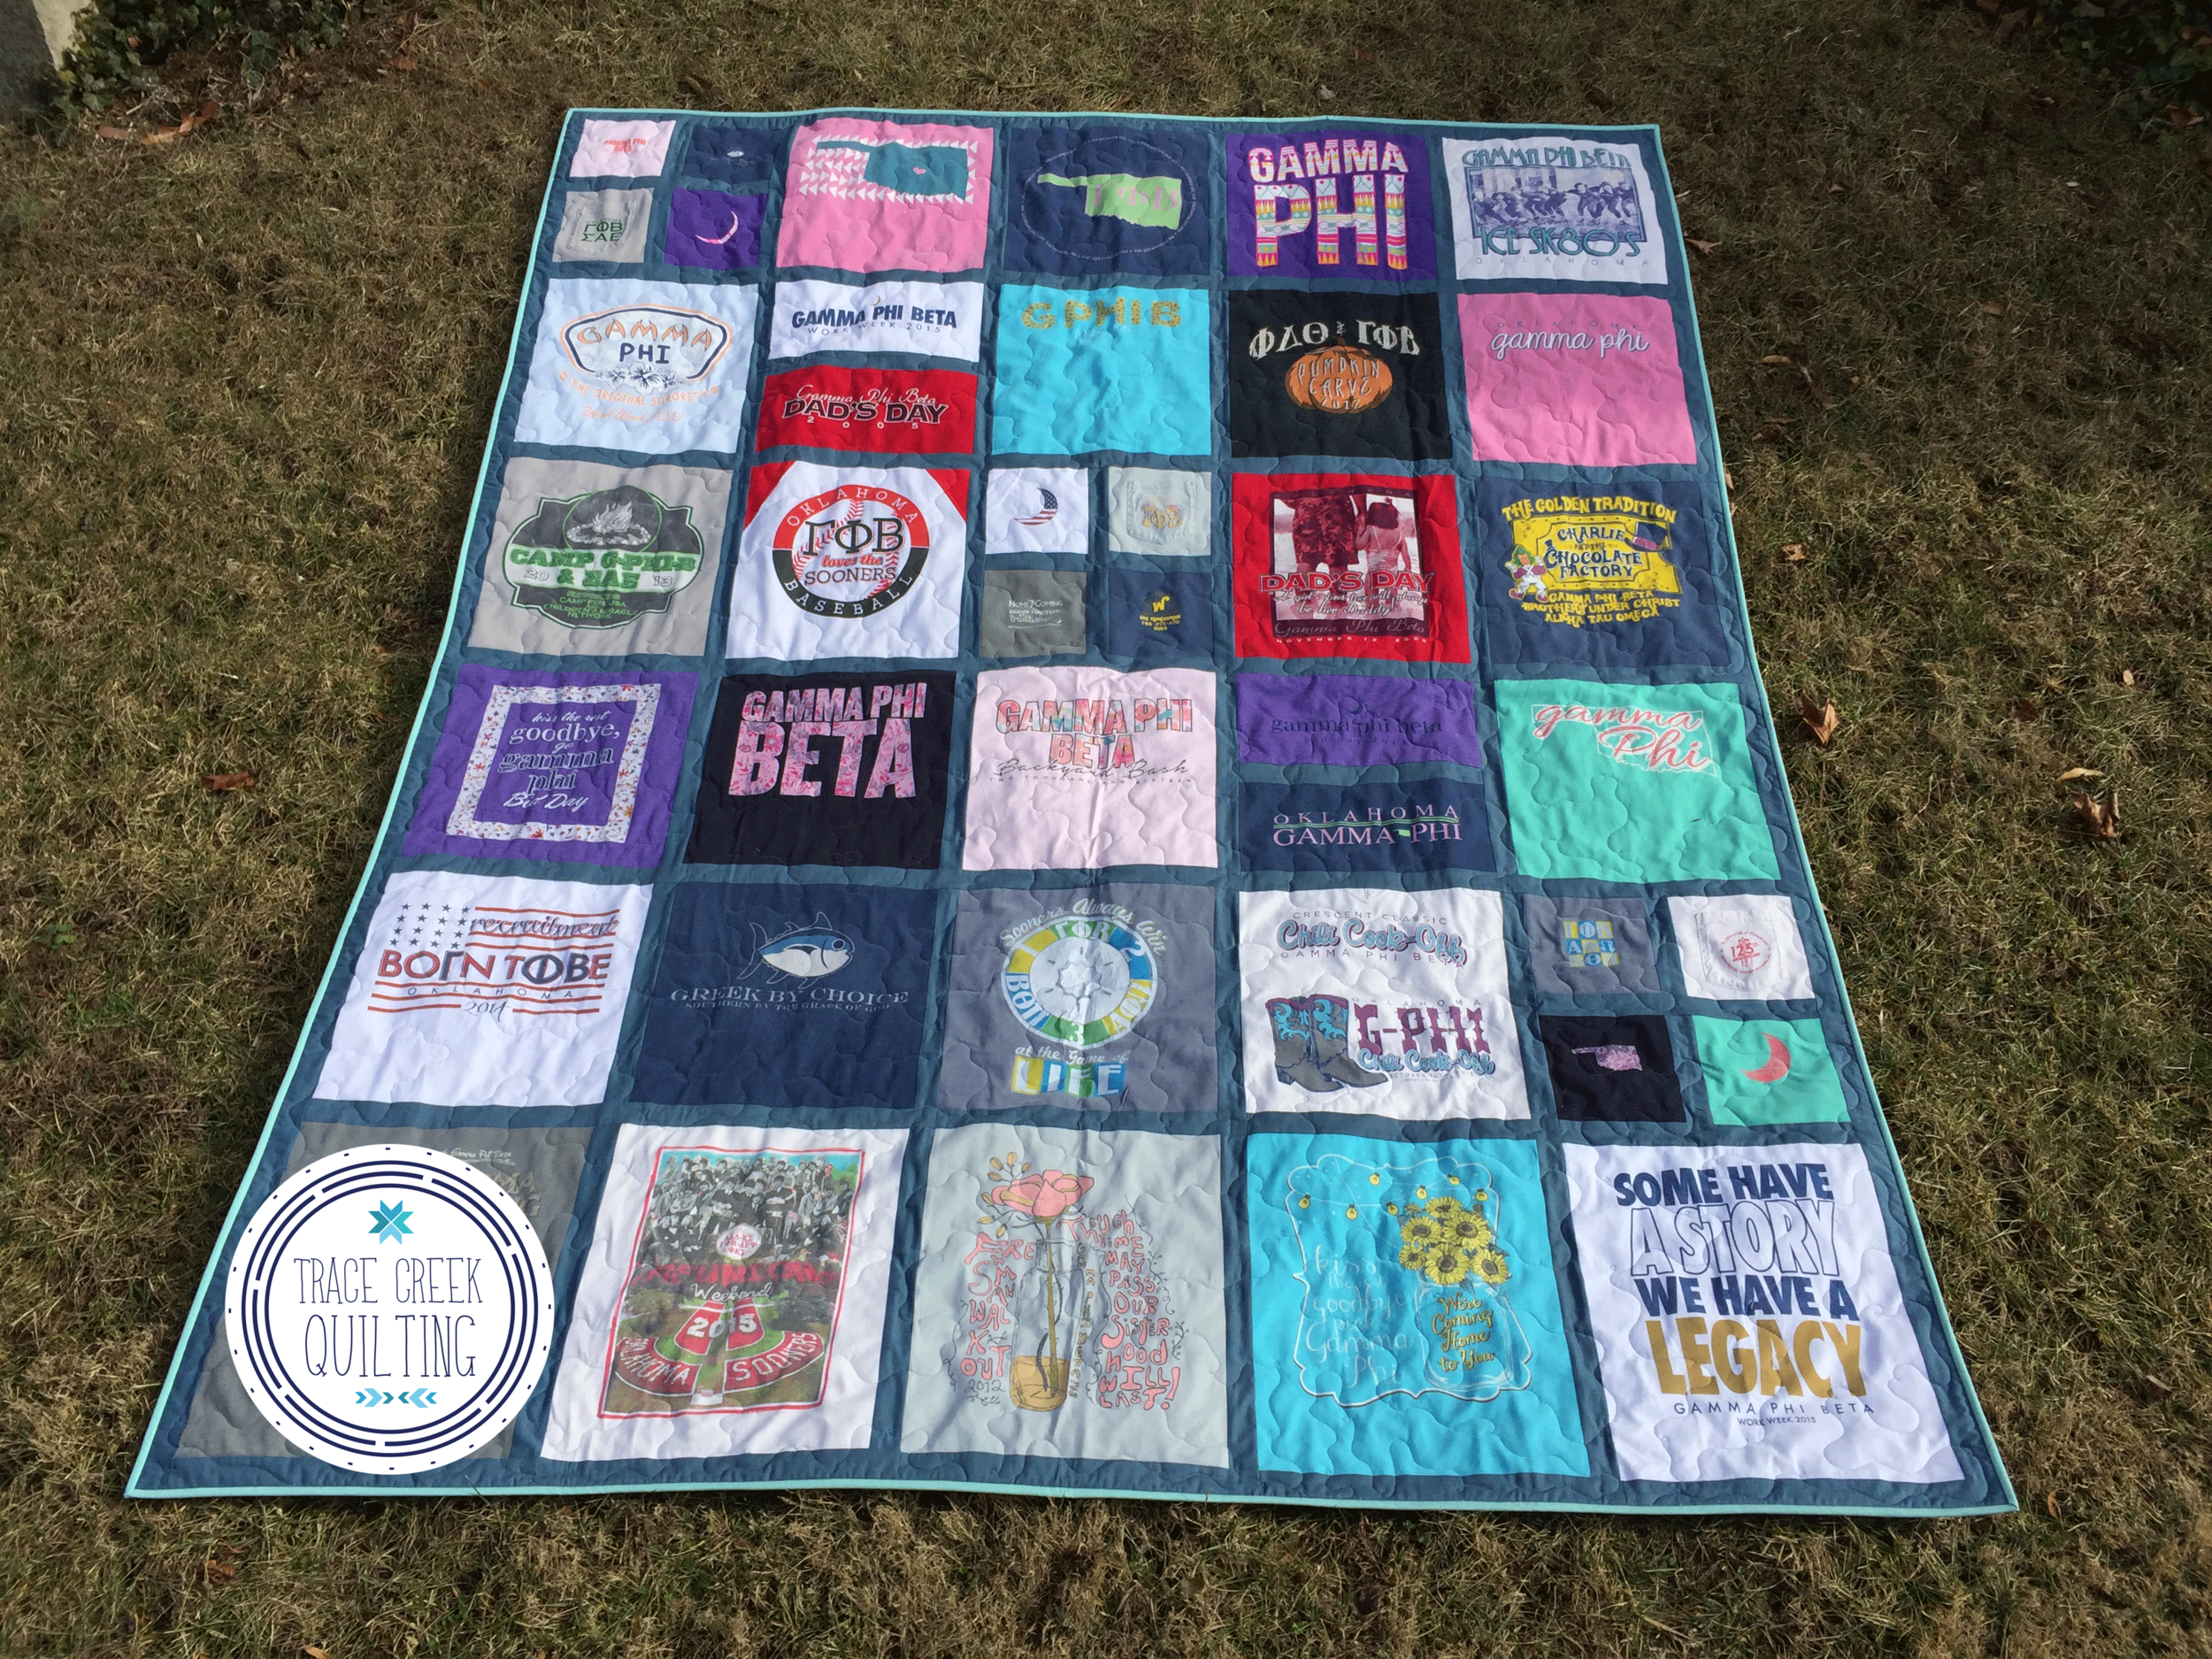 TShirt-Quilt-Trace-Creek-Quilting-035.png